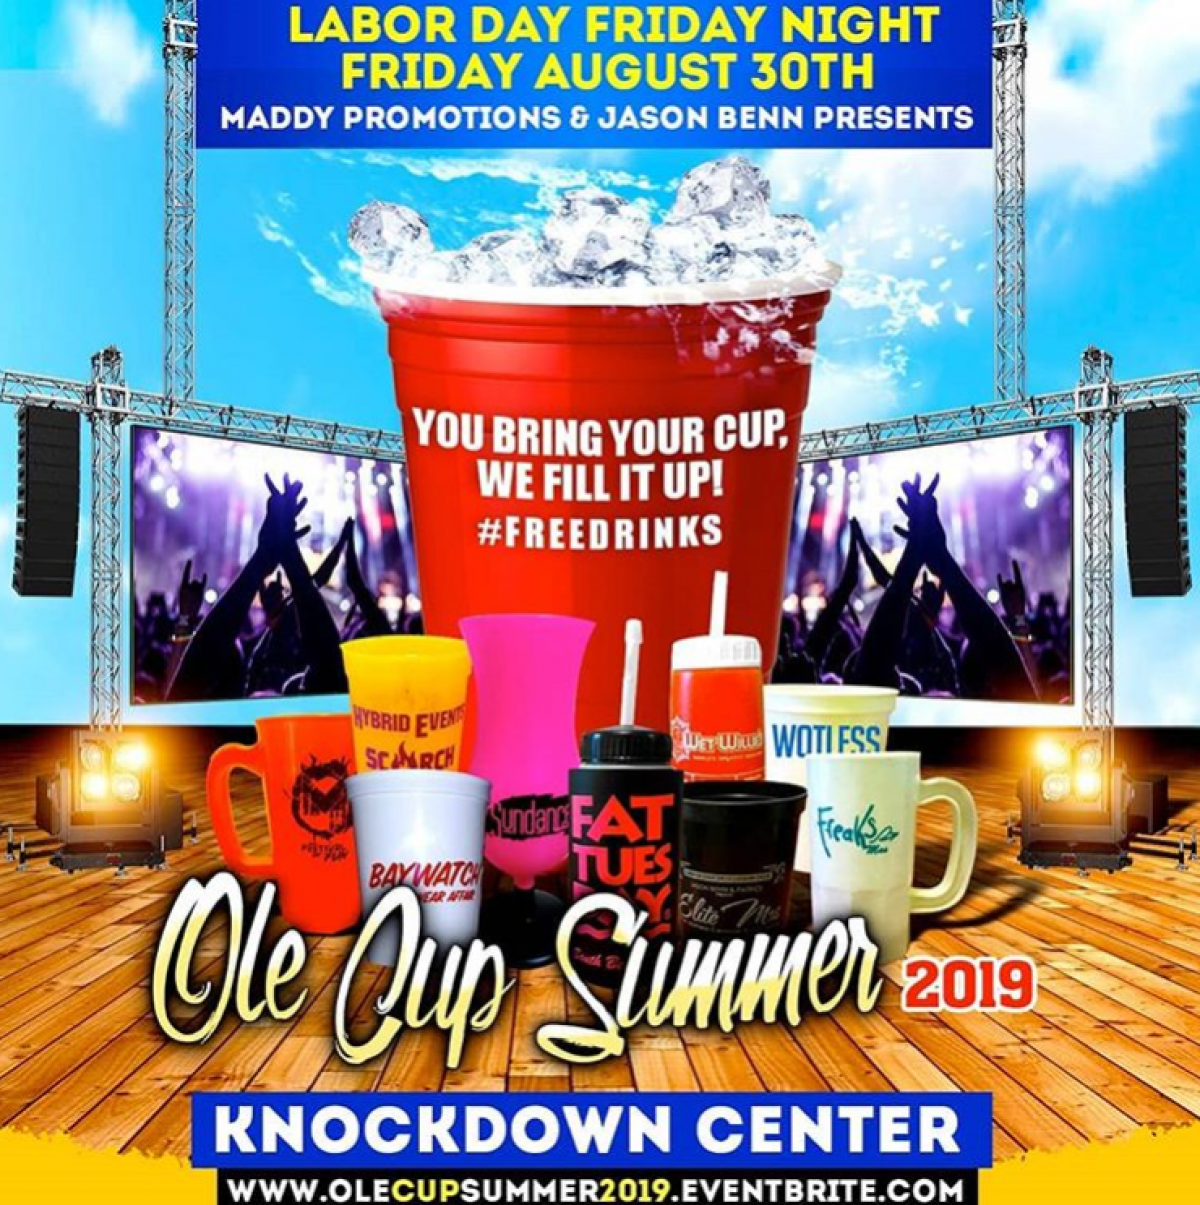 Ole Cup Summer flyer or graphic.